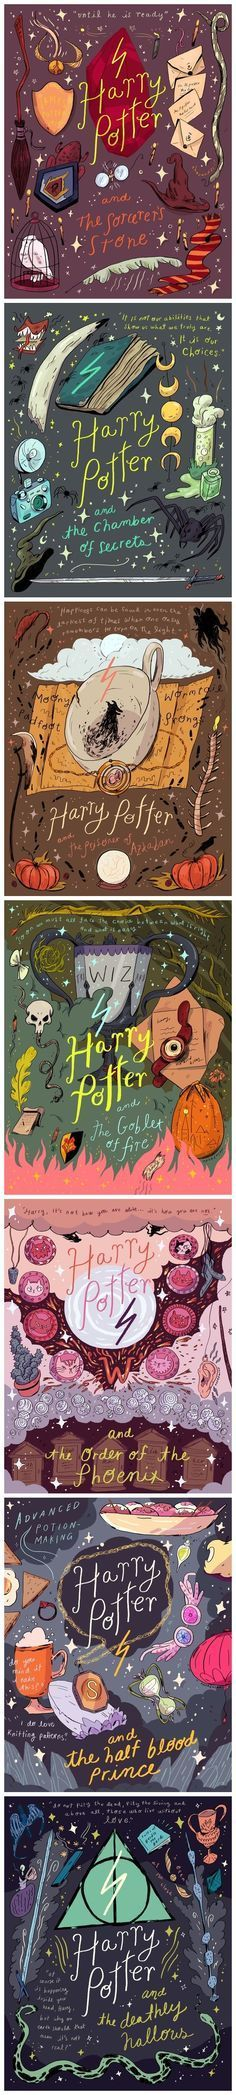 Image result for tumblr harry potter introduction post